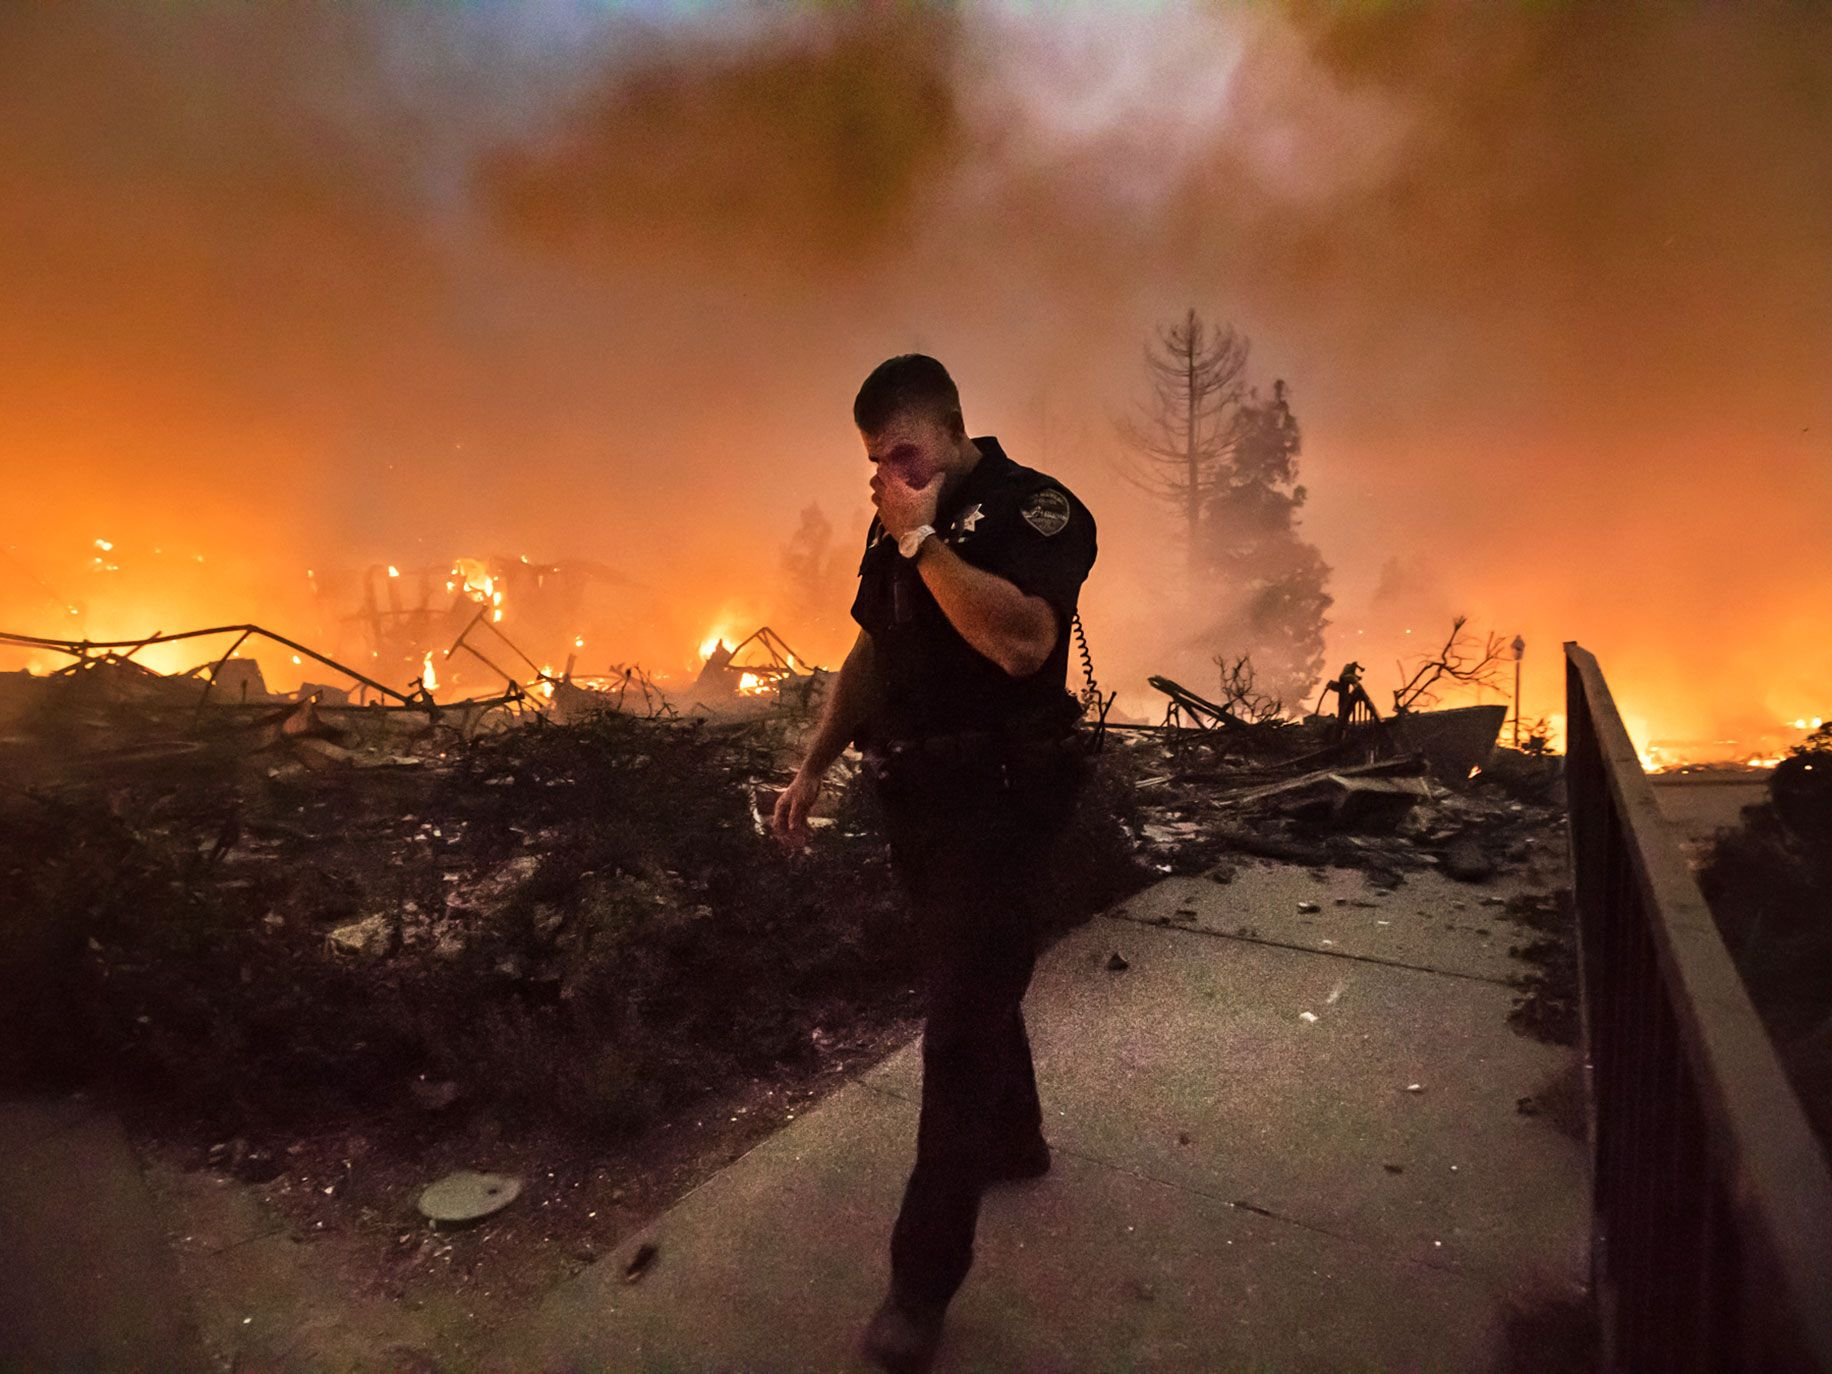 San Rafael Police Officer Mark Wilkinson wipes smoke from his eyes as the Santa Rosa Hilton hotel burns behind him on the evening of last Oct. 9.